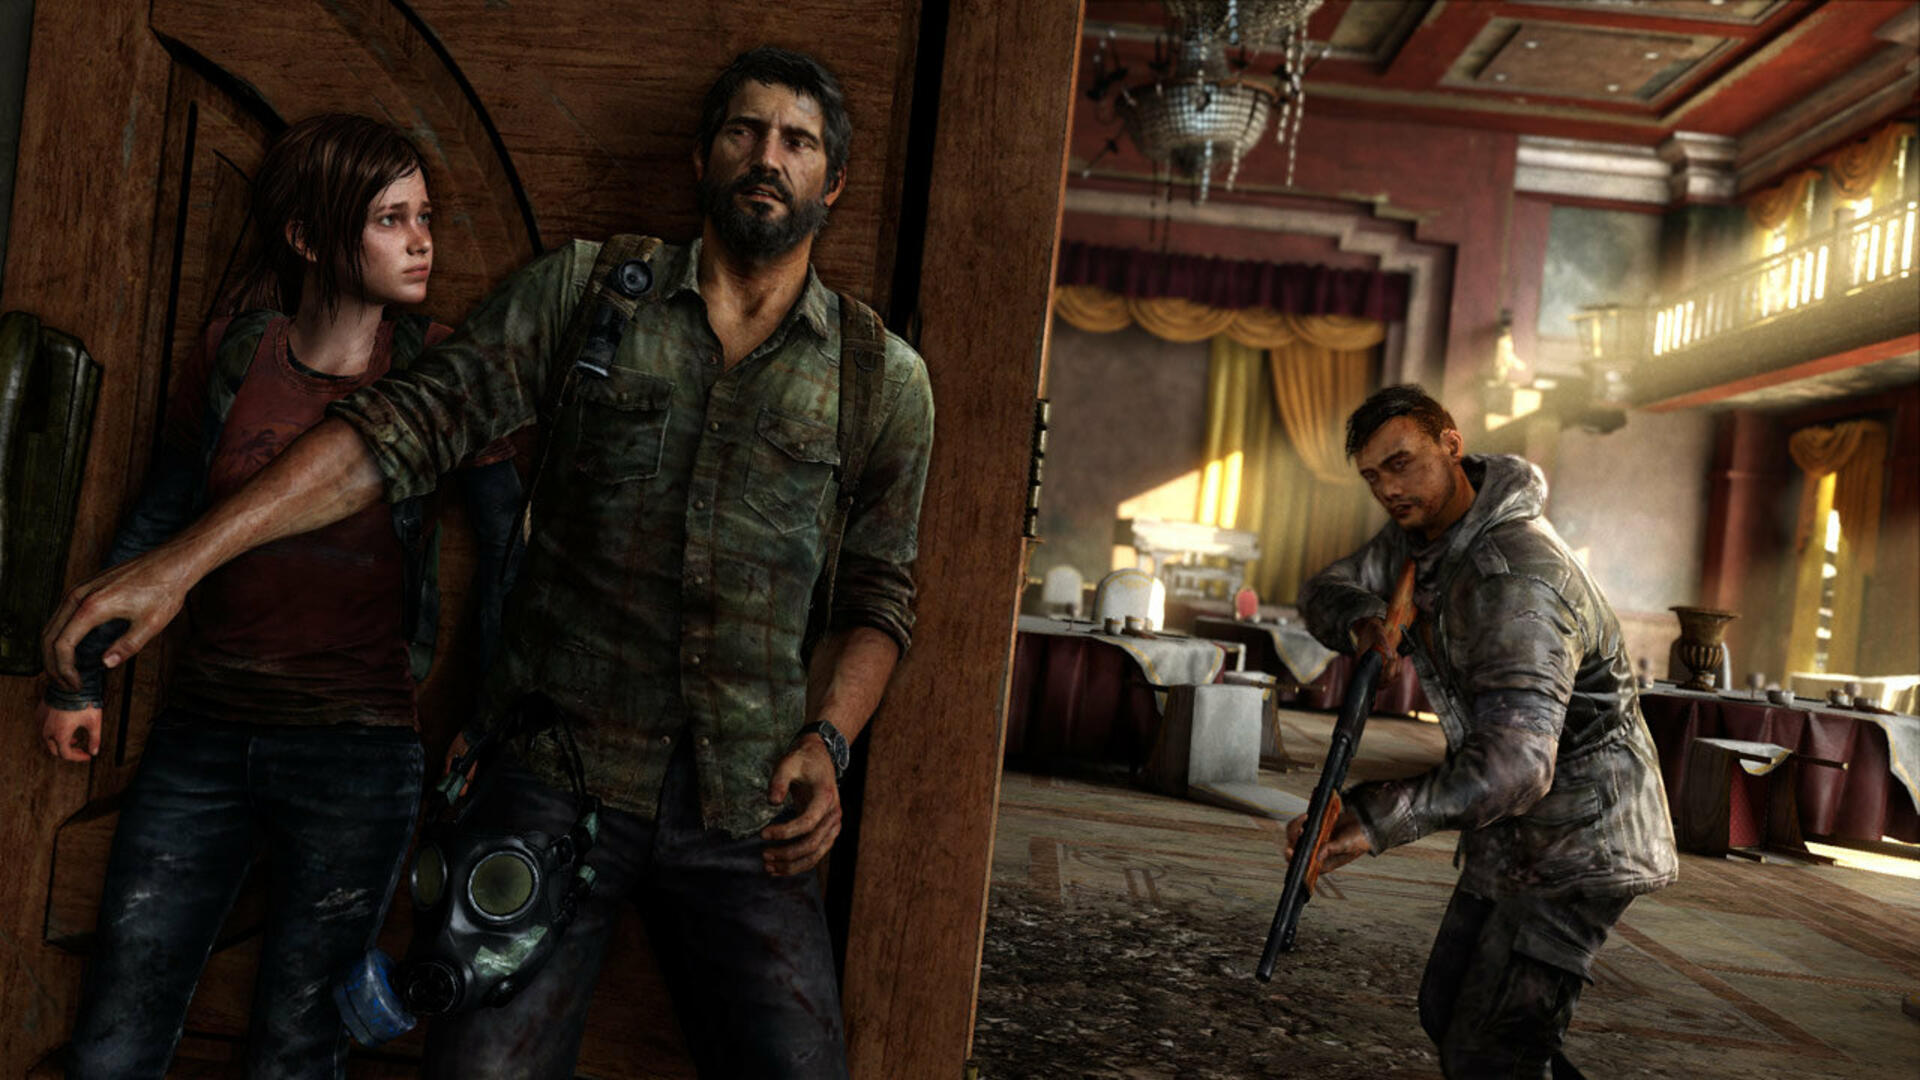 The Last of Us' PS3 Servers Going Down Today Marks the End of an Era